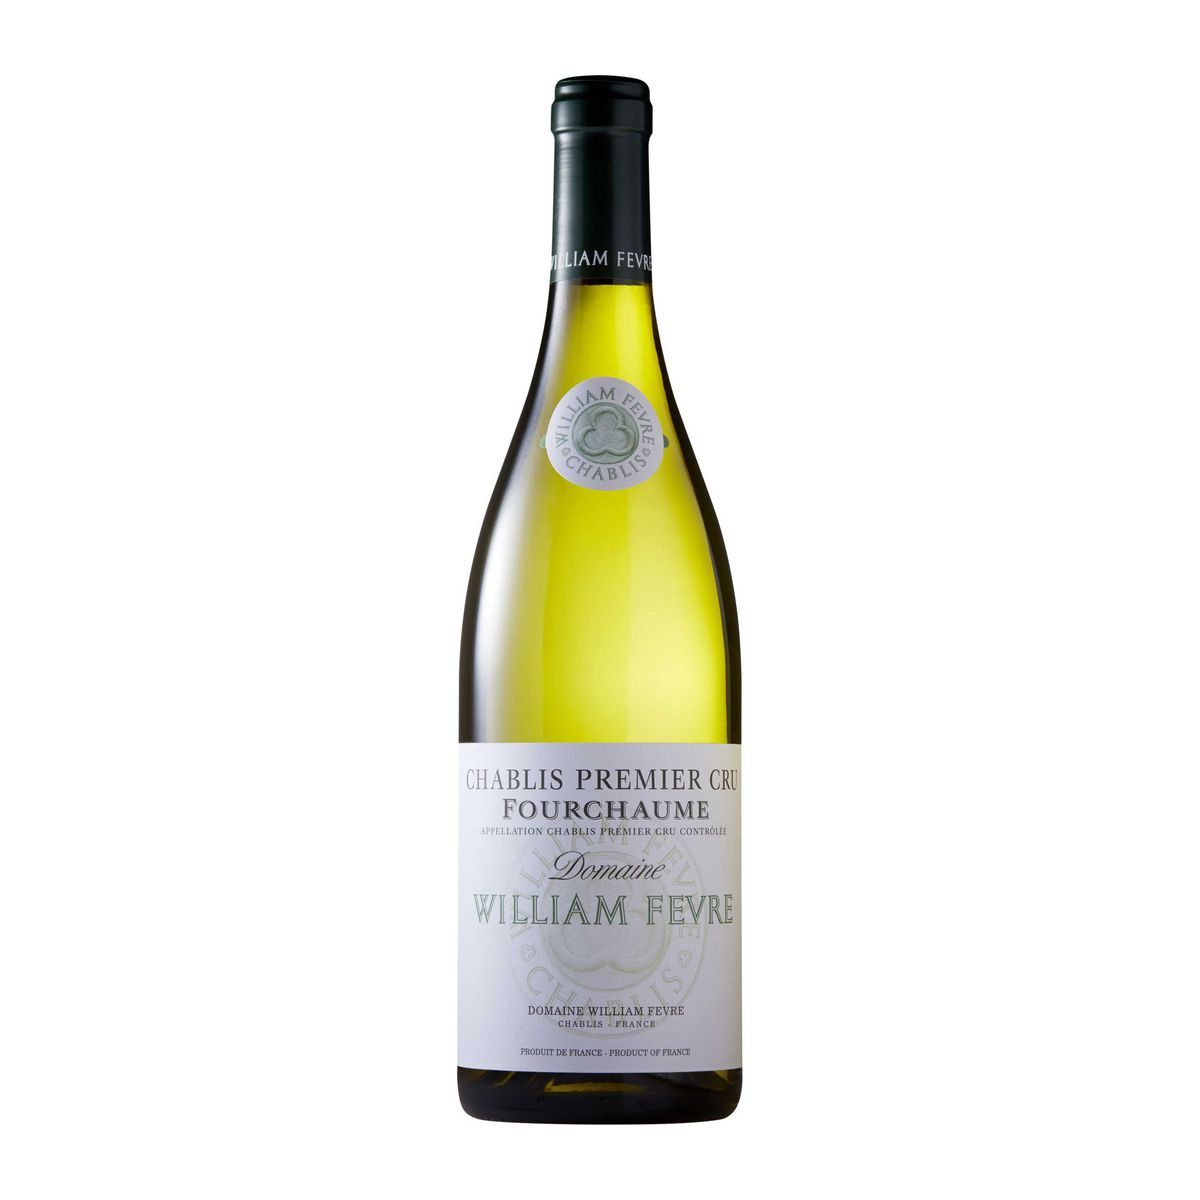 Chablis 1er Cru Fourchaume 2017 William Fèvre